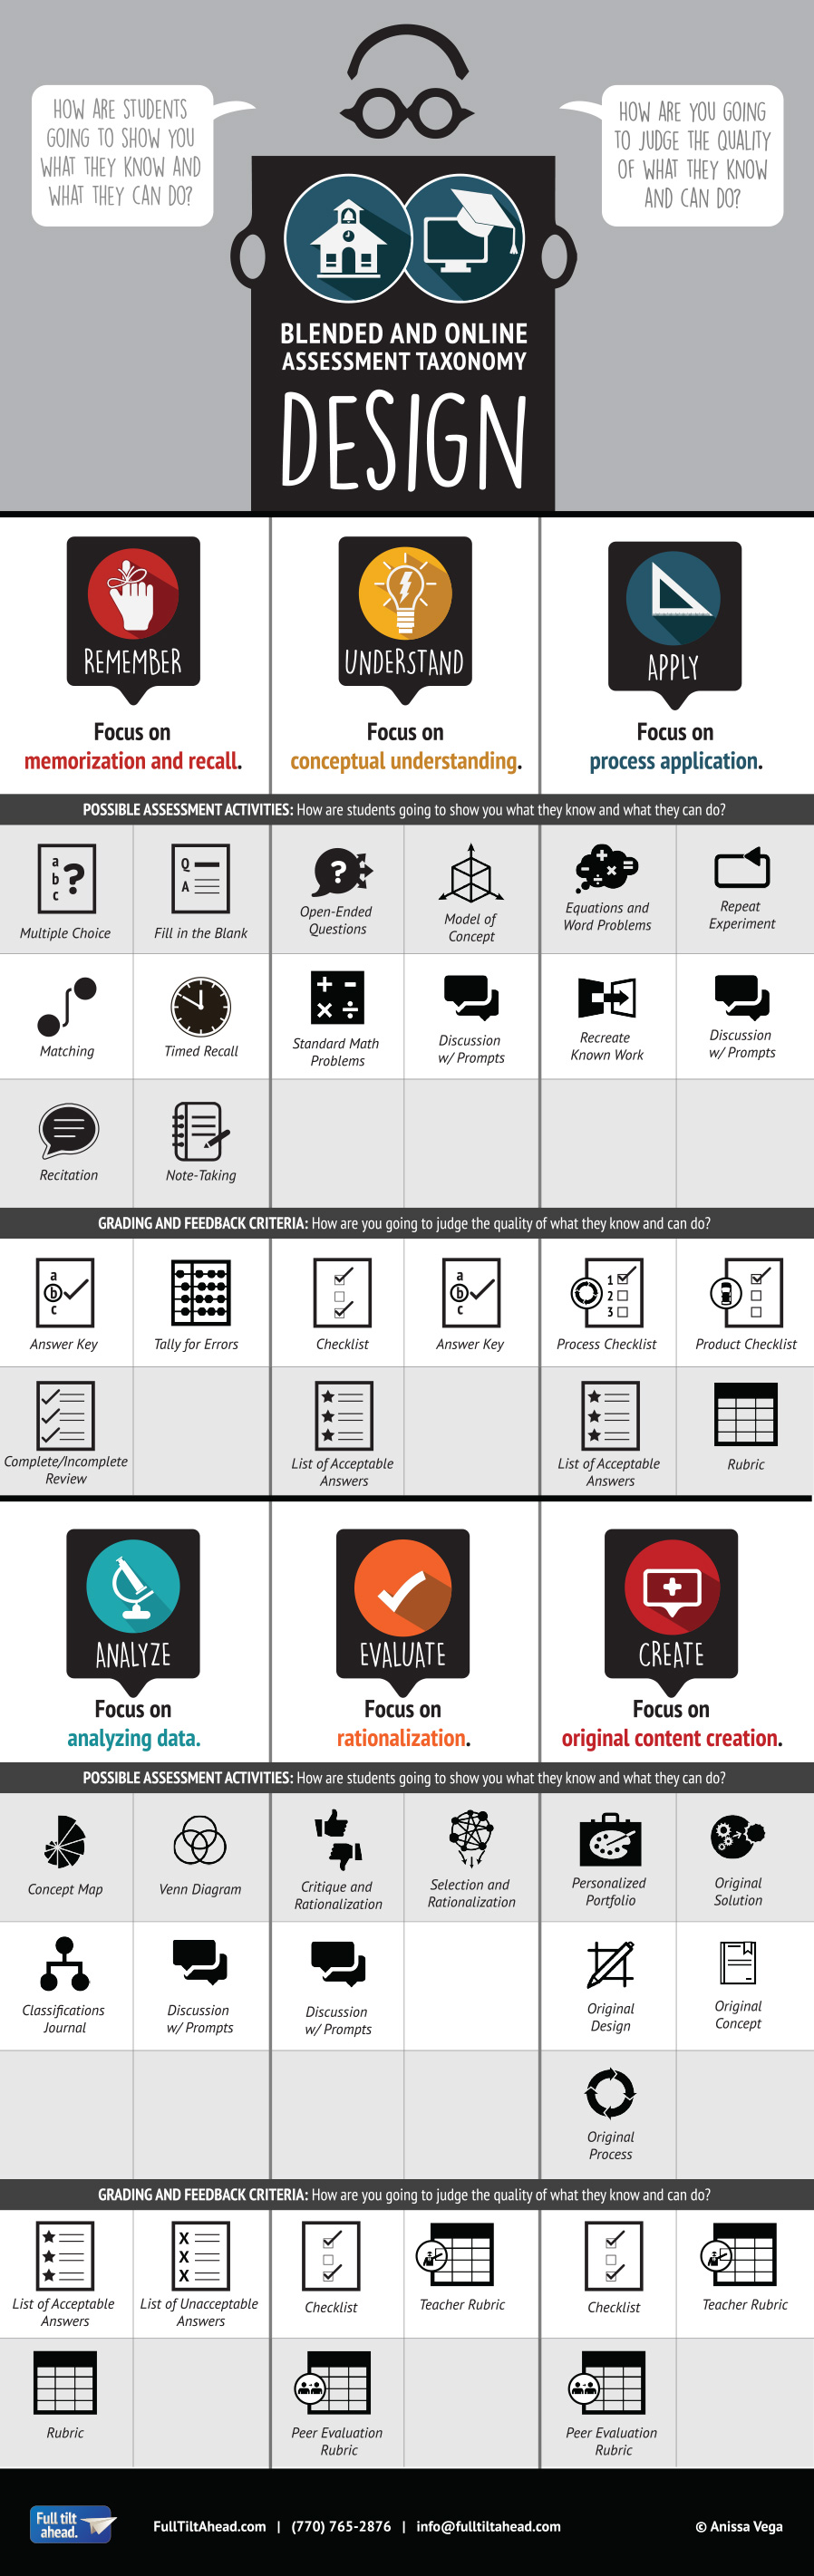 Designing Blended and Online Assessment Taxonomy: In the infographic, Blended and Online Assessment Taxonomy, we have organized types of activities that suit various levels of assessments (2001) starting with remember, understand, and apply in the first row. Assessment activities like matching, multiple choice, and word problems fall among these lower levels of learning. Grading and feedback criteria for these levels of learning are very objective and include answer keys and checklists. One key advantage of using assessments in these levels is that often grading and feedback criteria are objective enough to be computer automated in the blended or online environment. The second row of our infographic includes higher levels of active learning including analyze, evaluate, and create. Engaging curriculum whether face-to-face, blended, or online push student performances to these levels of learning; however, these assessments are less conducive to automated feedback systems as rubrics typically require intelligent judgment. The appropriate level of learning for any assessment should be determined by the learning objective(s).